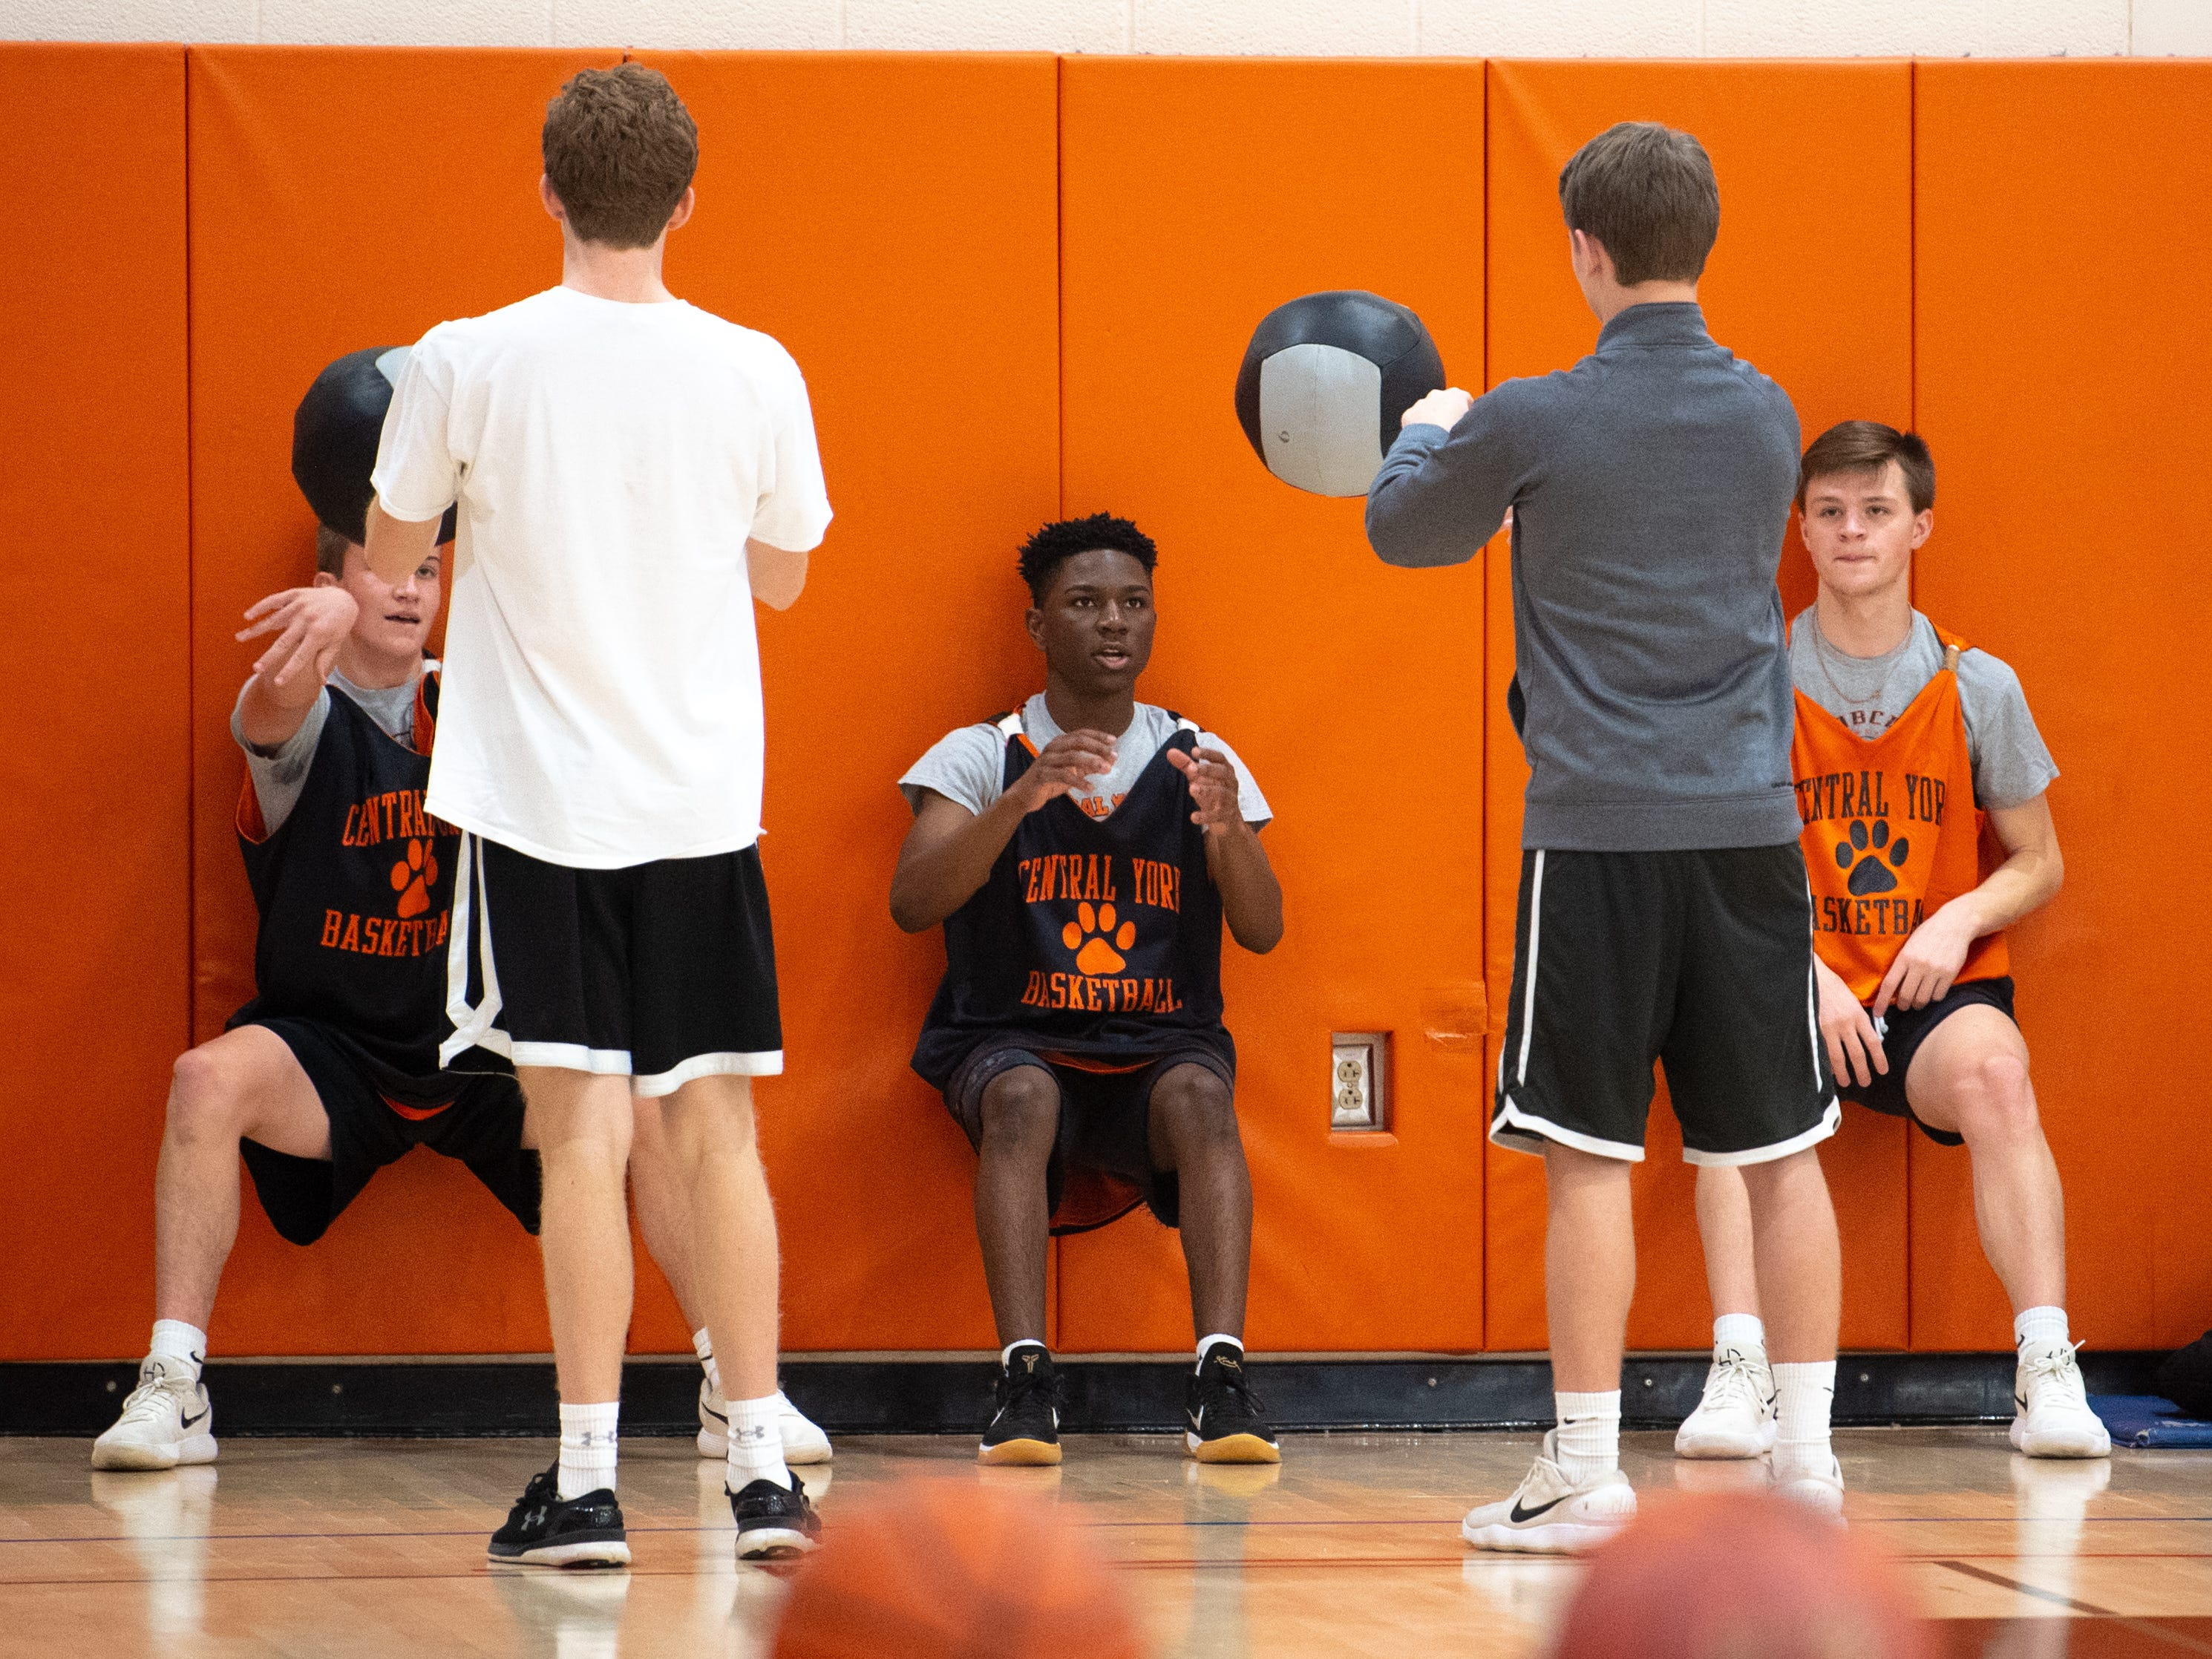 Central York boys' basketball players work on their legs during practice, Wednesday, November 21, 2018.